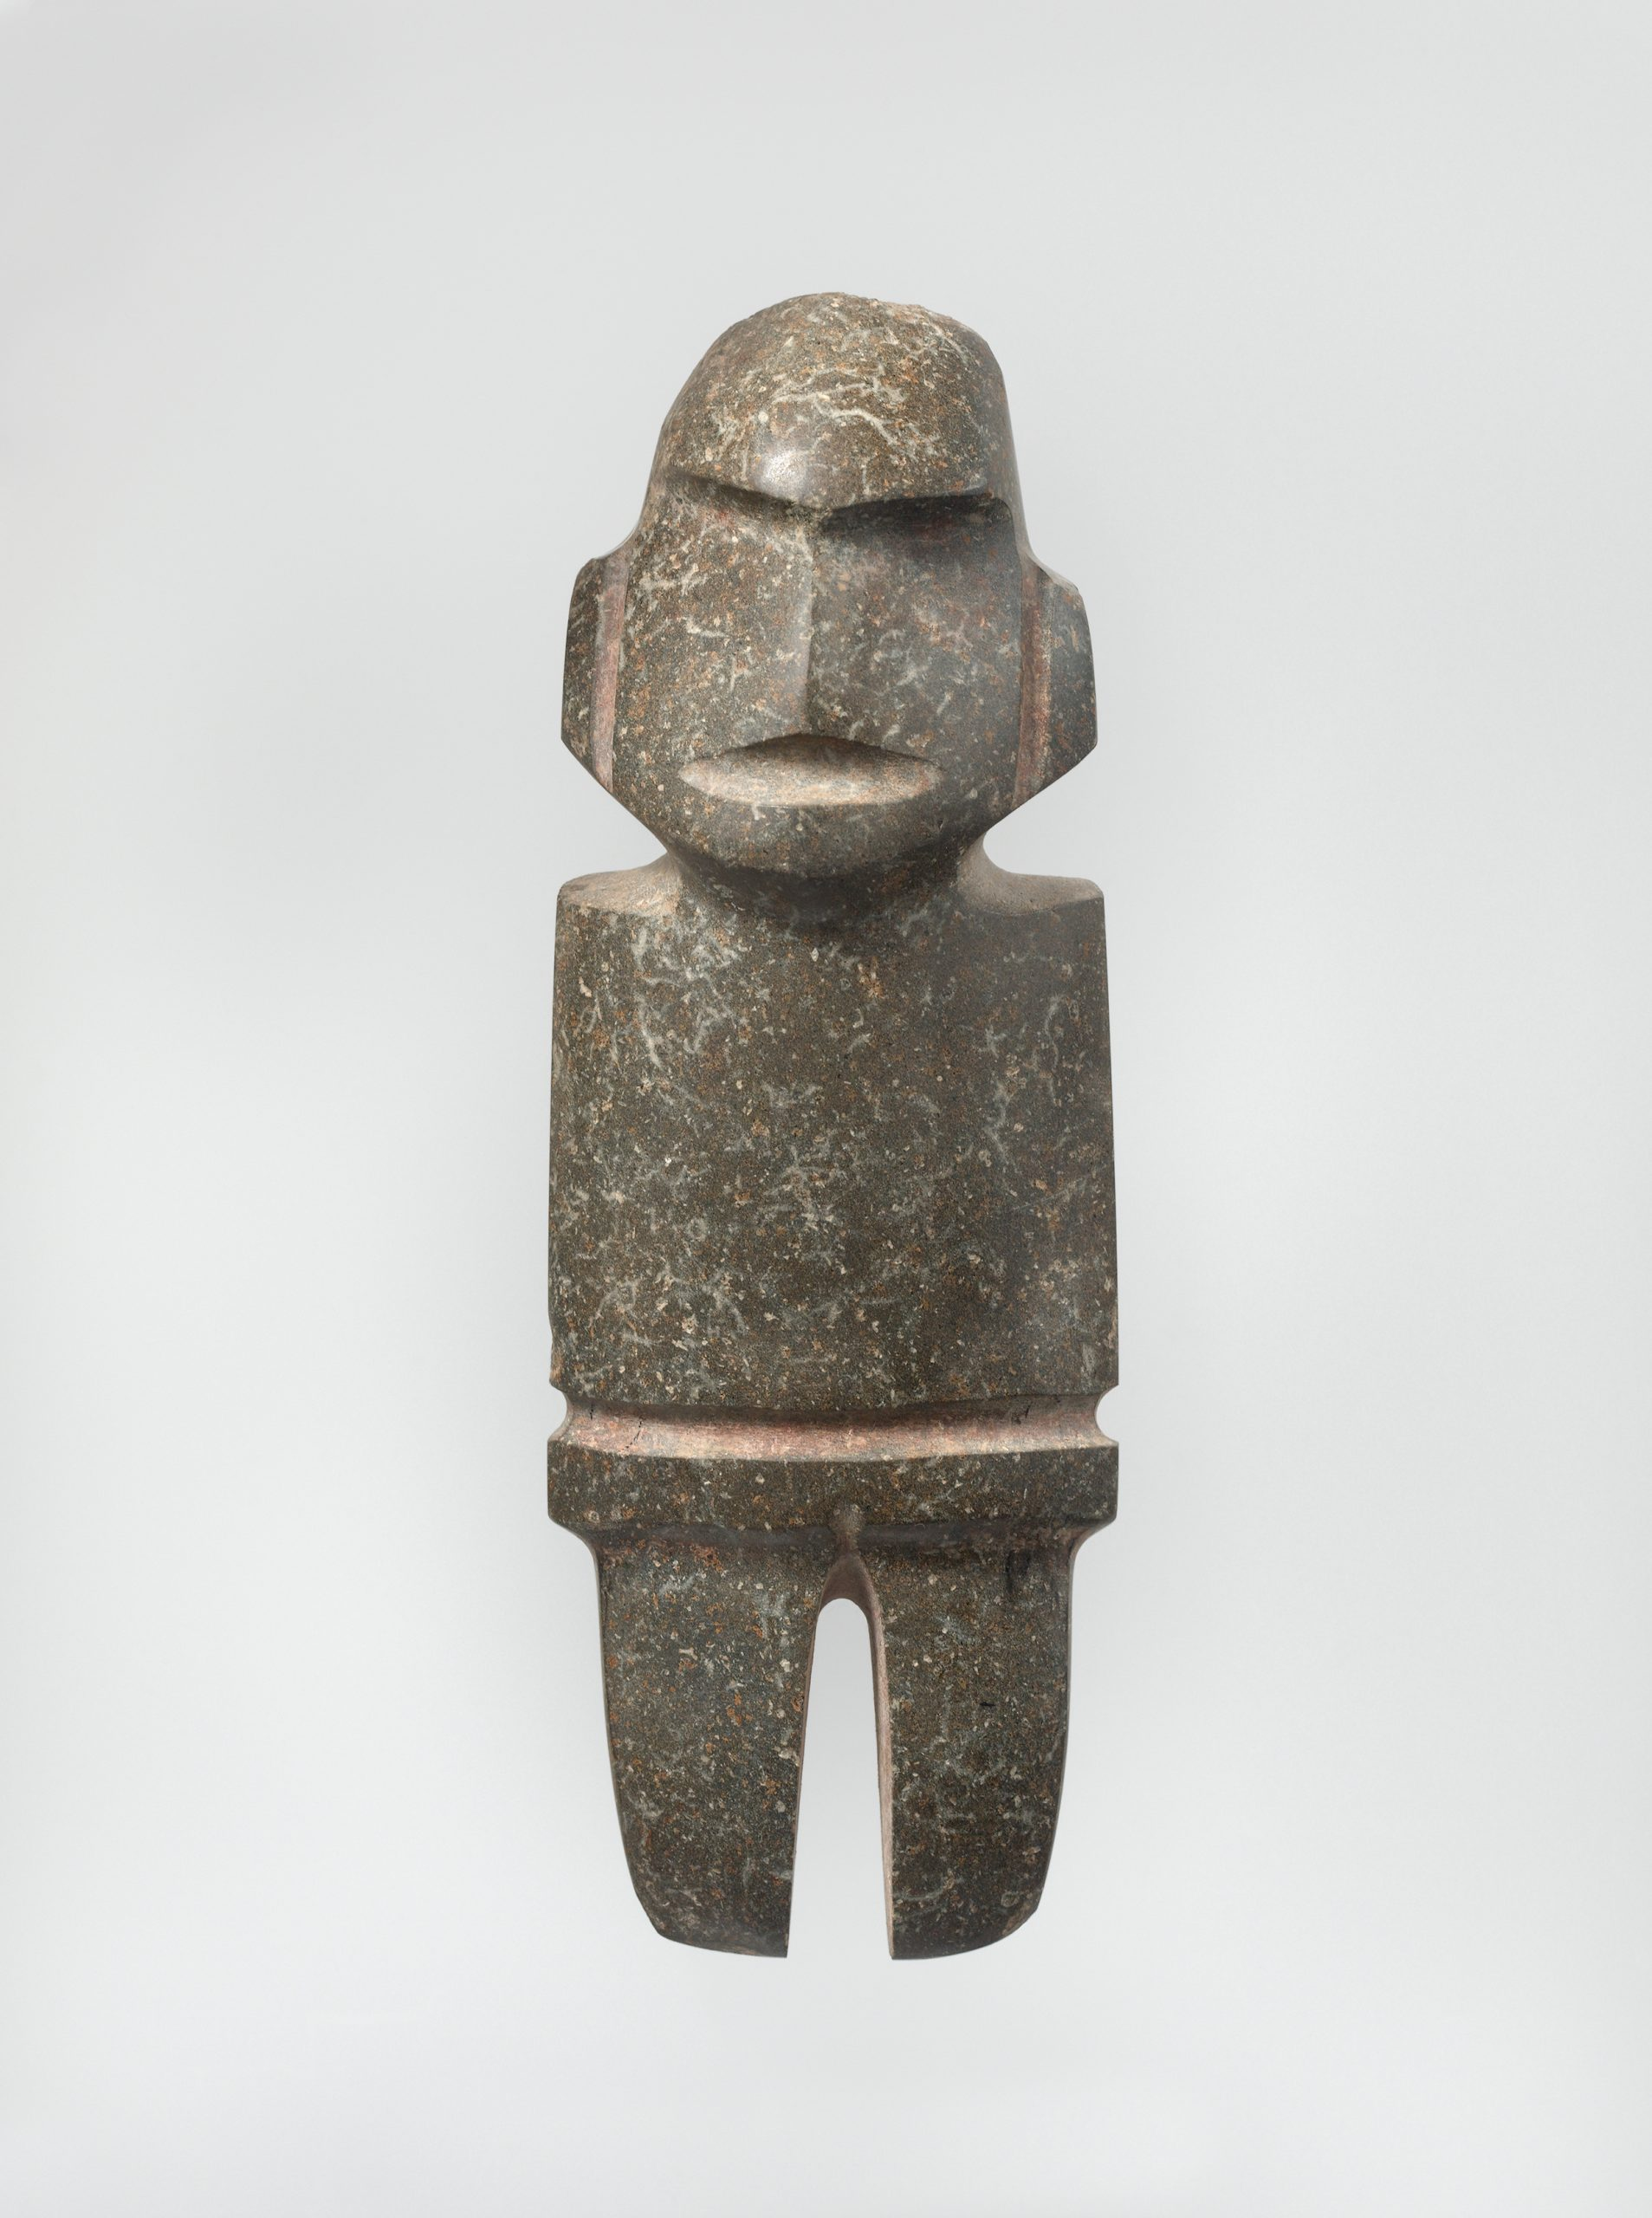 Abstract standing figure with no arms and indented features to represent facial features.